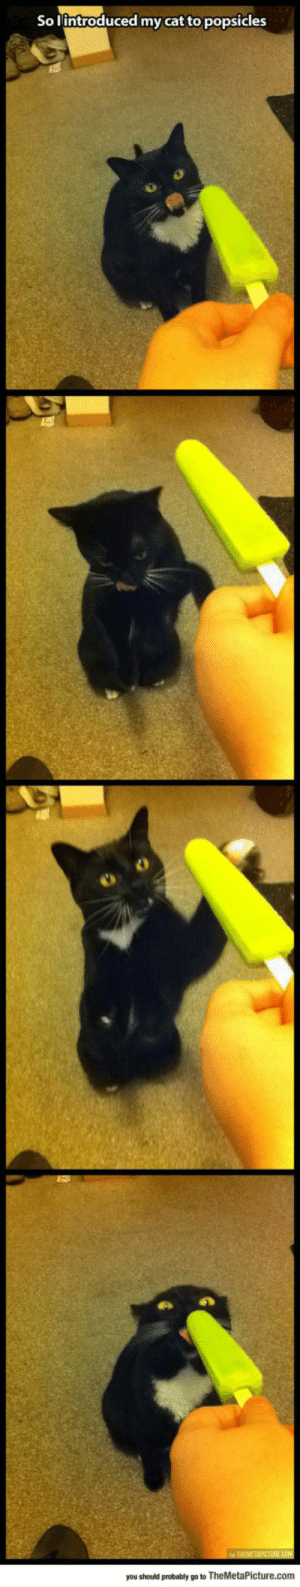 lolzandtrollz:  Cat Reacts To Popsicles: So lintroduced my cat to popsicles  ww THEMETAPICTURE.cOM  you should probably go to TheMetaPicture.com lolzandtrollz:  Cat Reacts To Popsicles